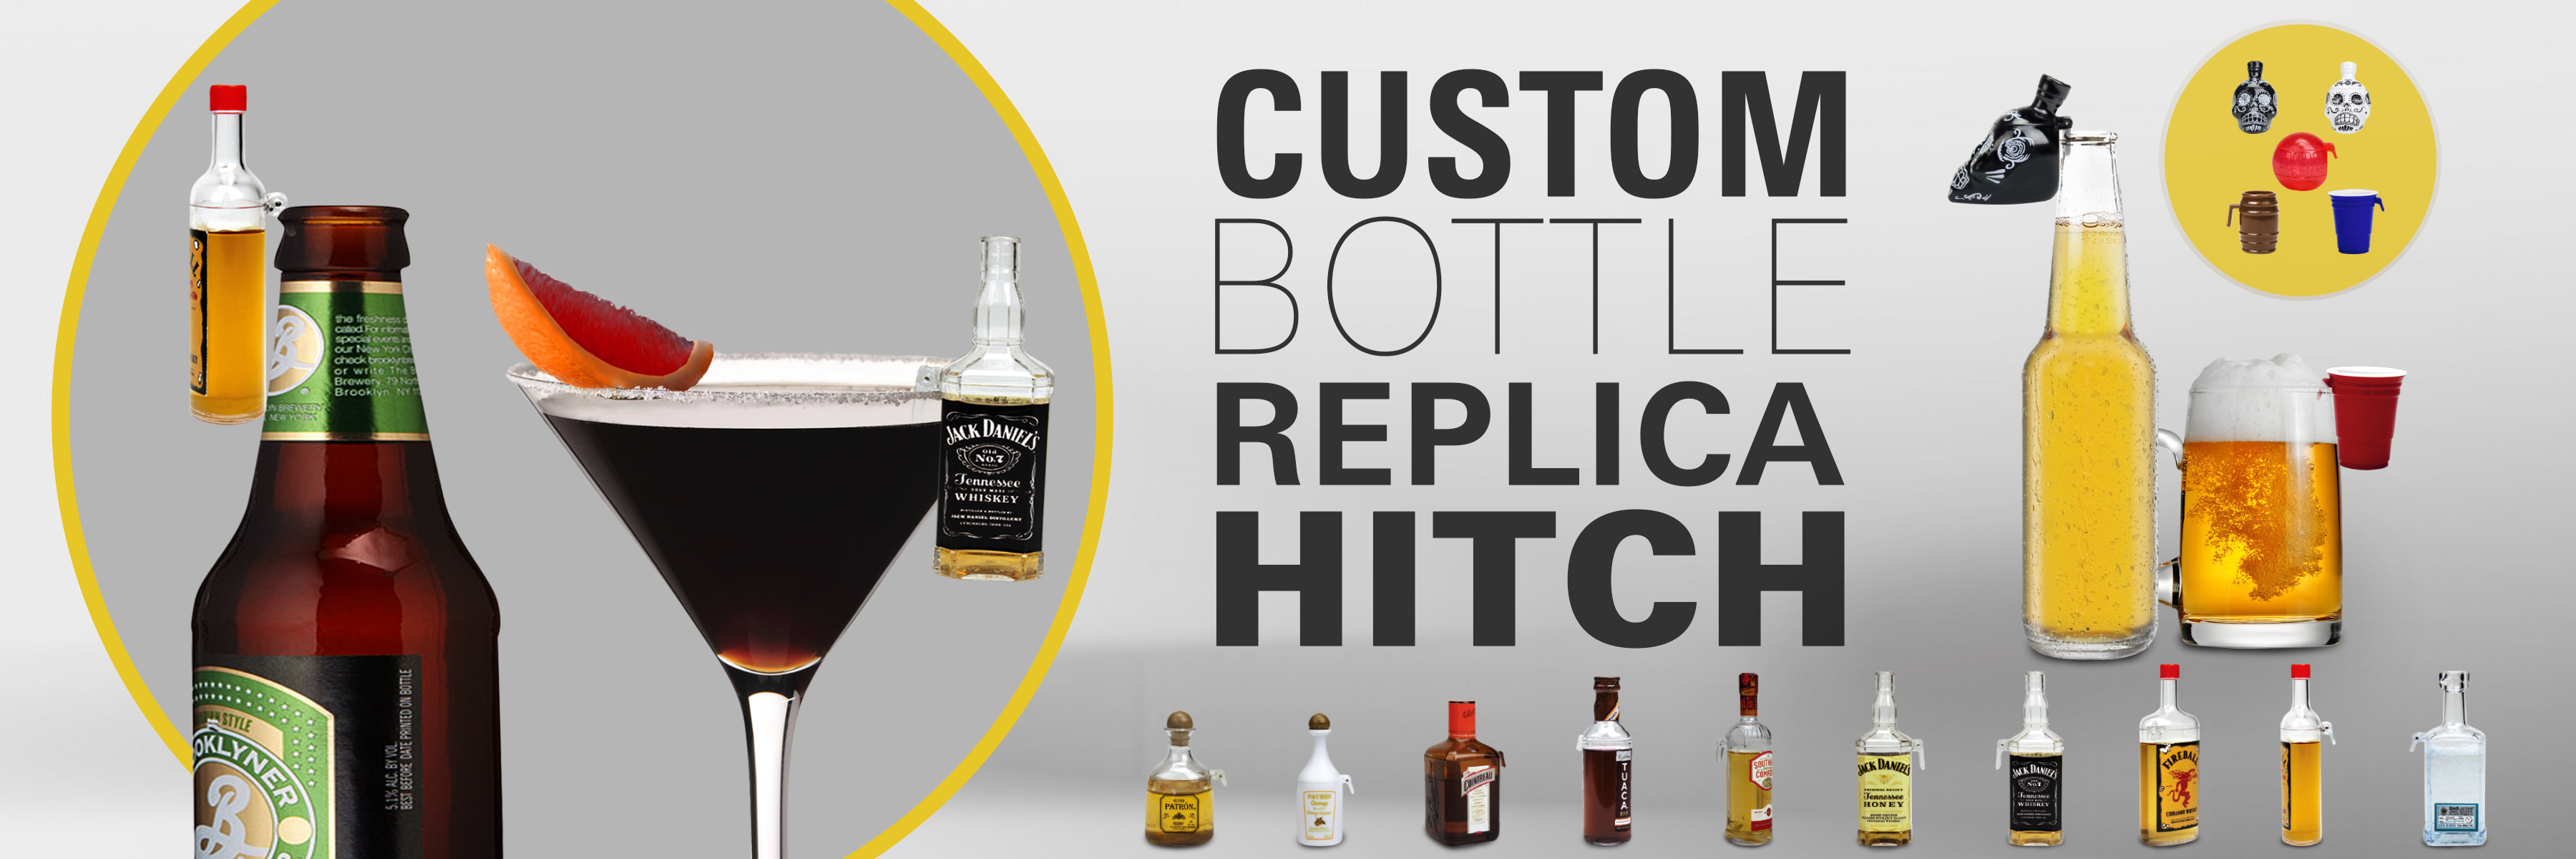 custom bottle replica hitch